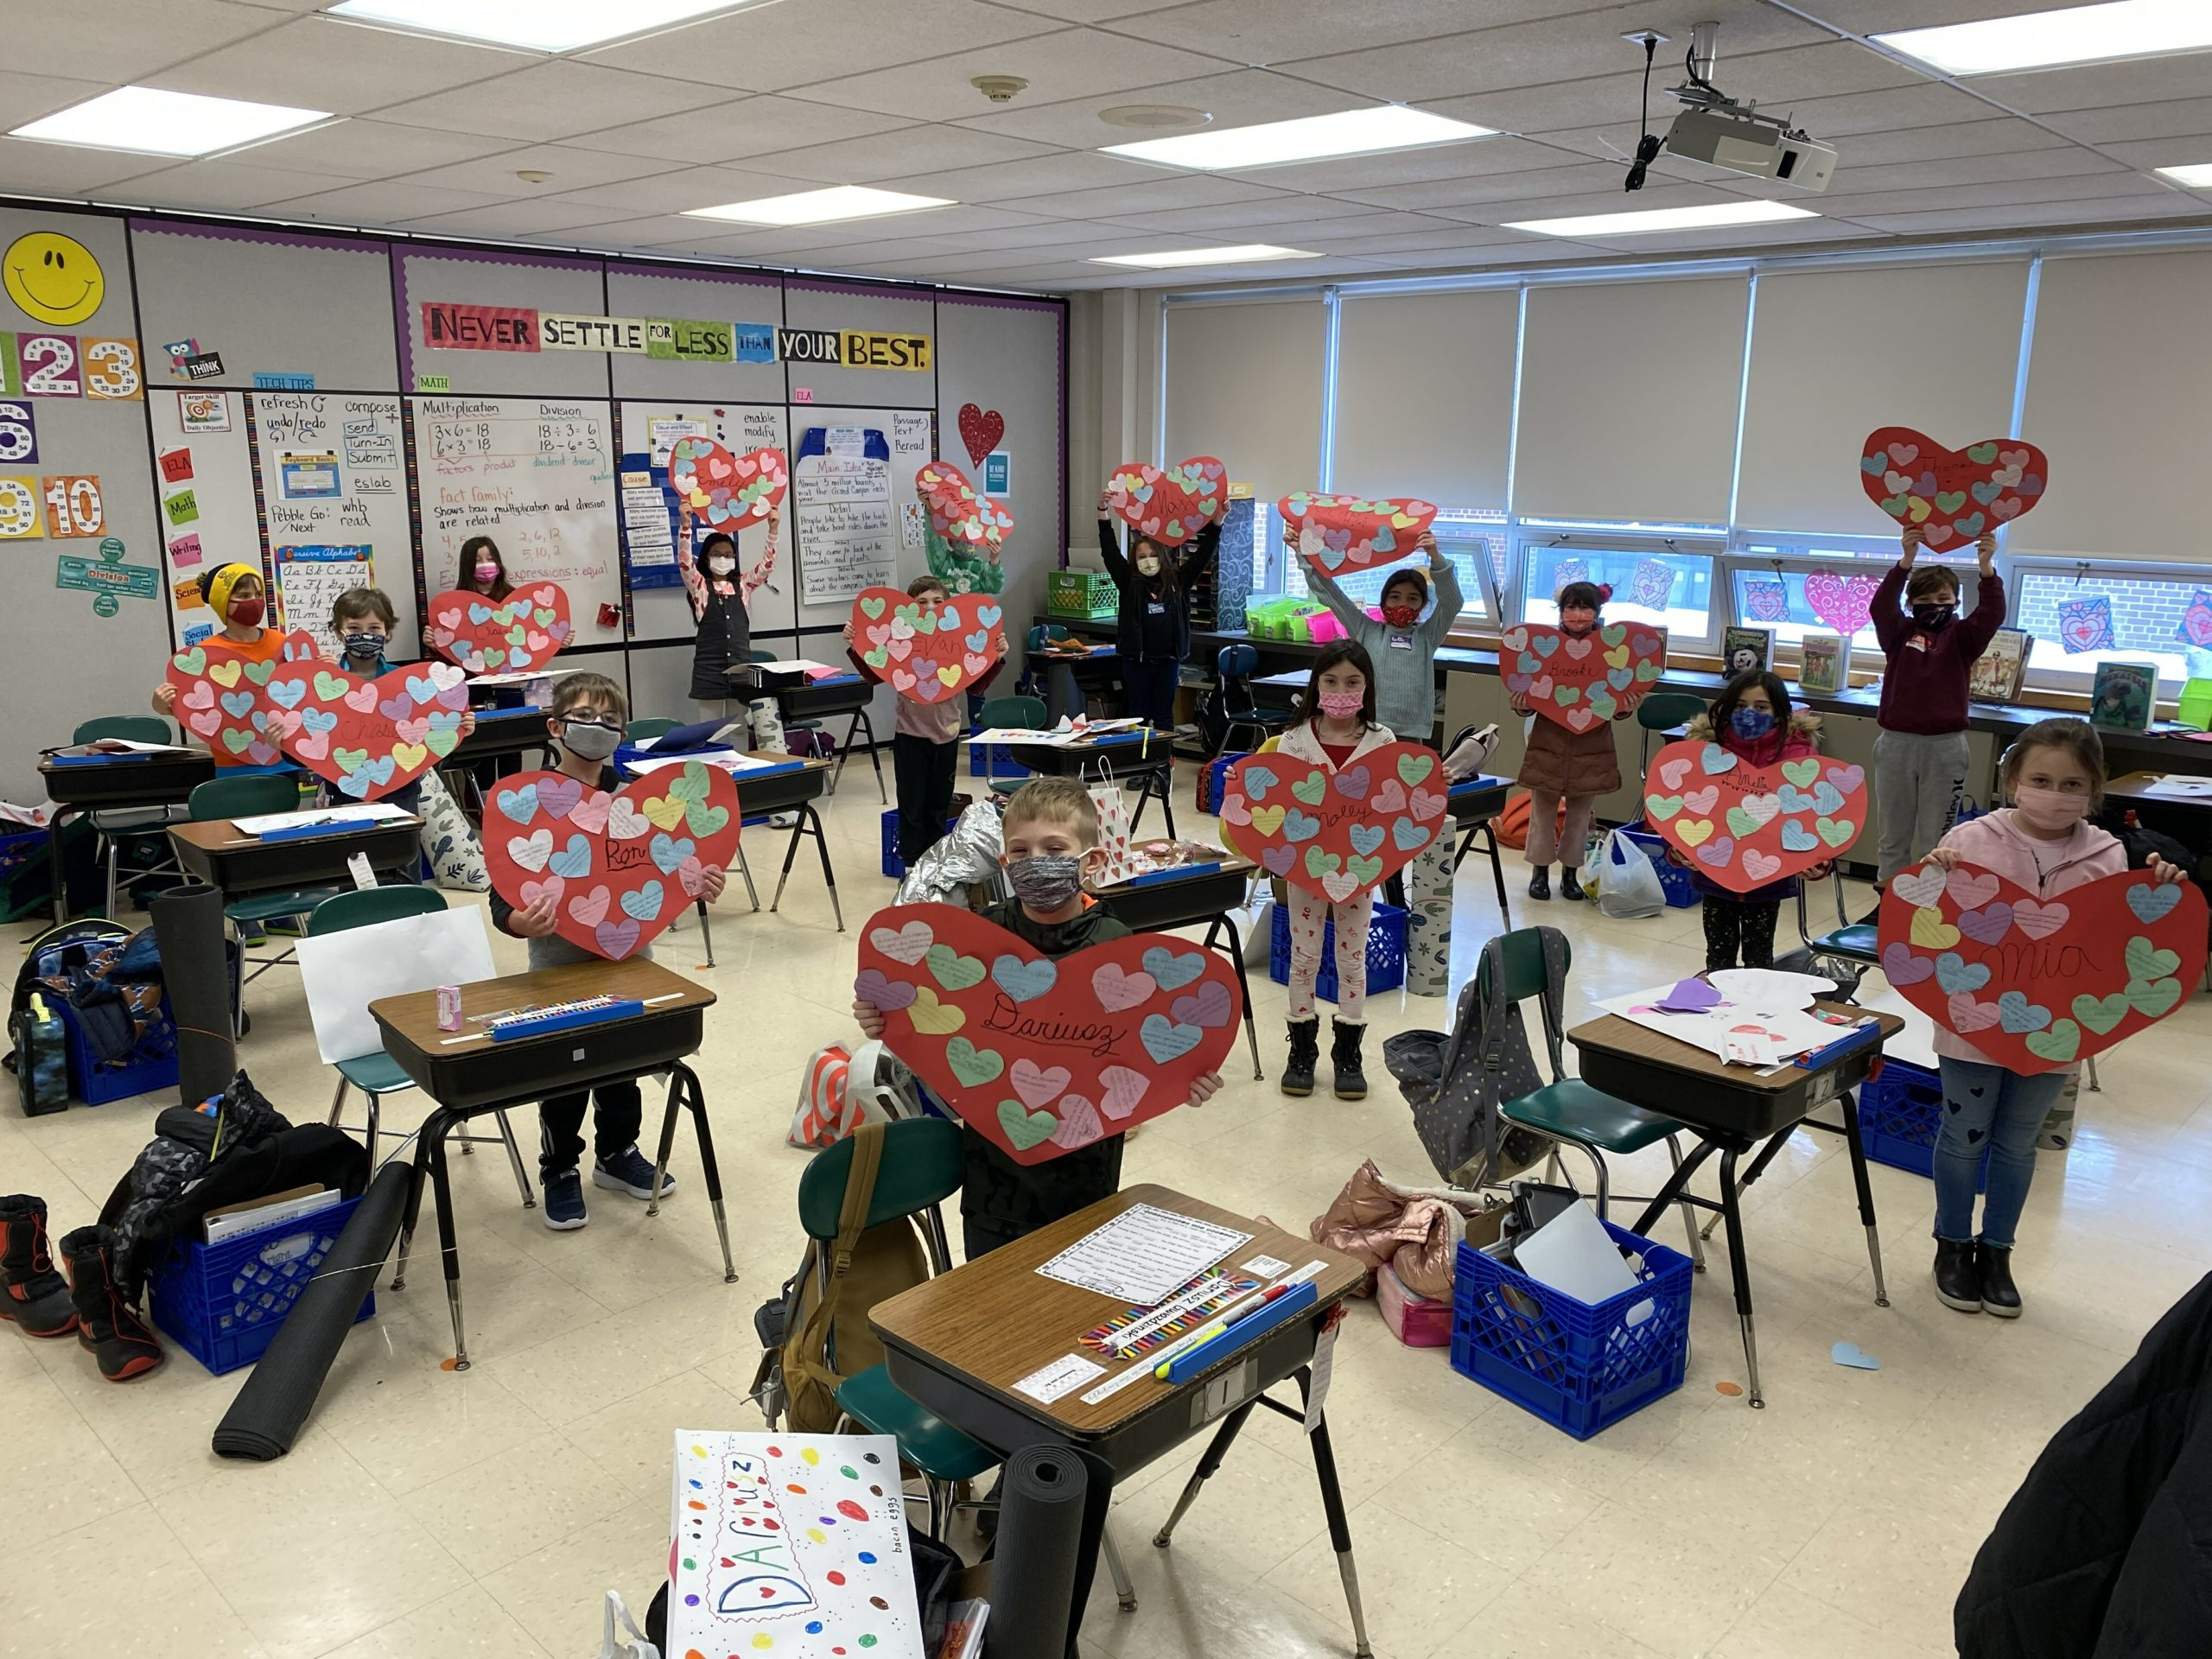 To spread the love for Valentine's Day, Rosalie Gilhauley's third grade class at Westhampton Beach Elementary School made collages out of life-size paper candy hearts. The students adorned the hearts with messages of kindness that they wrote to each other.